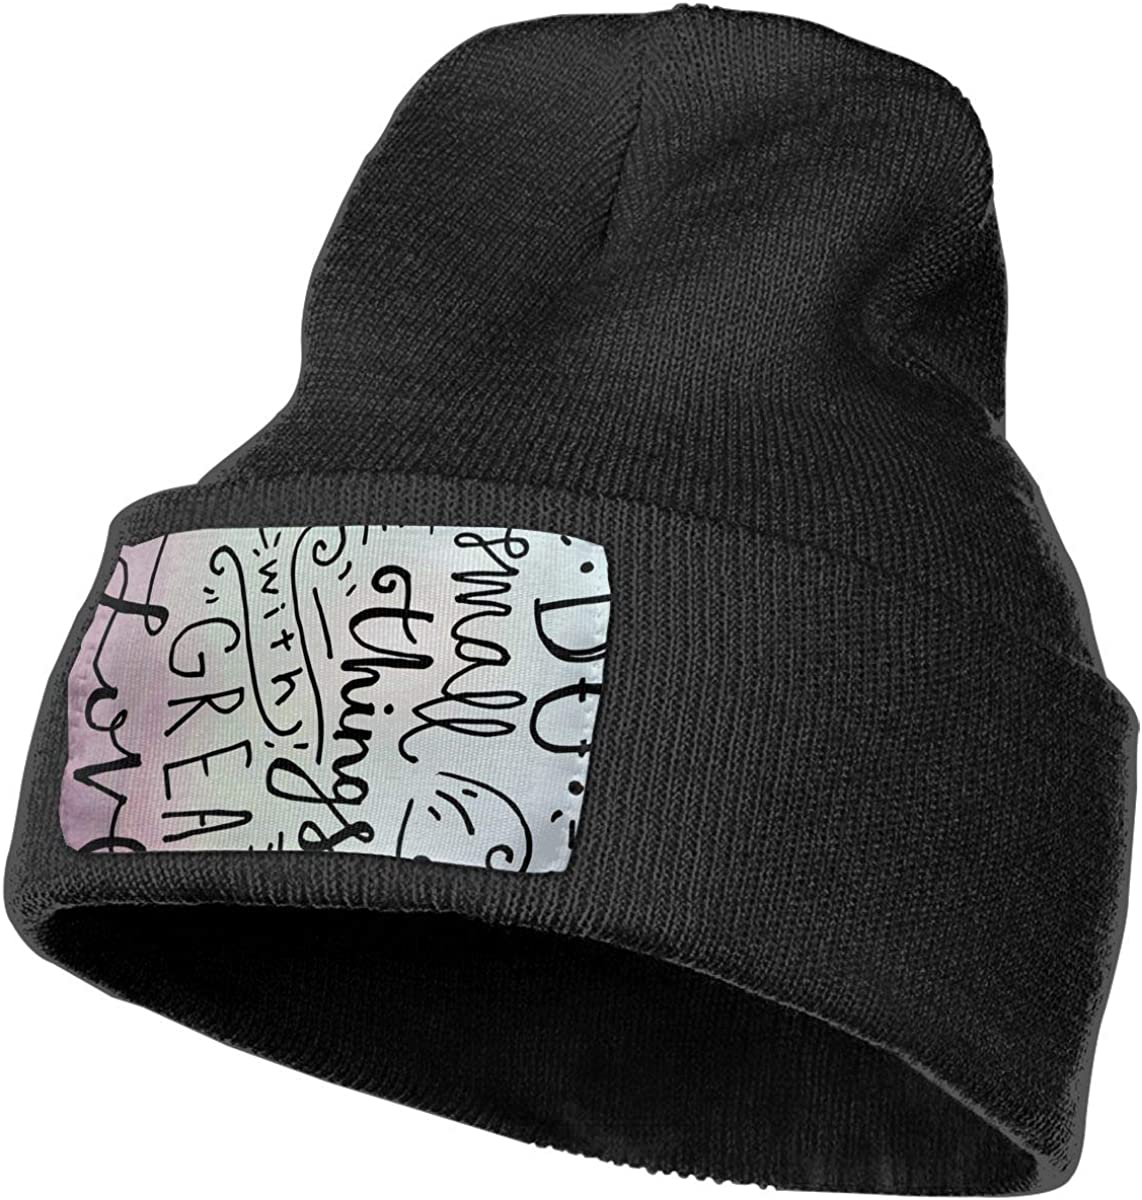 Do Small Things with Great Love Unisex Fashion Knitted Hat Luxury Hip-Hop Cap